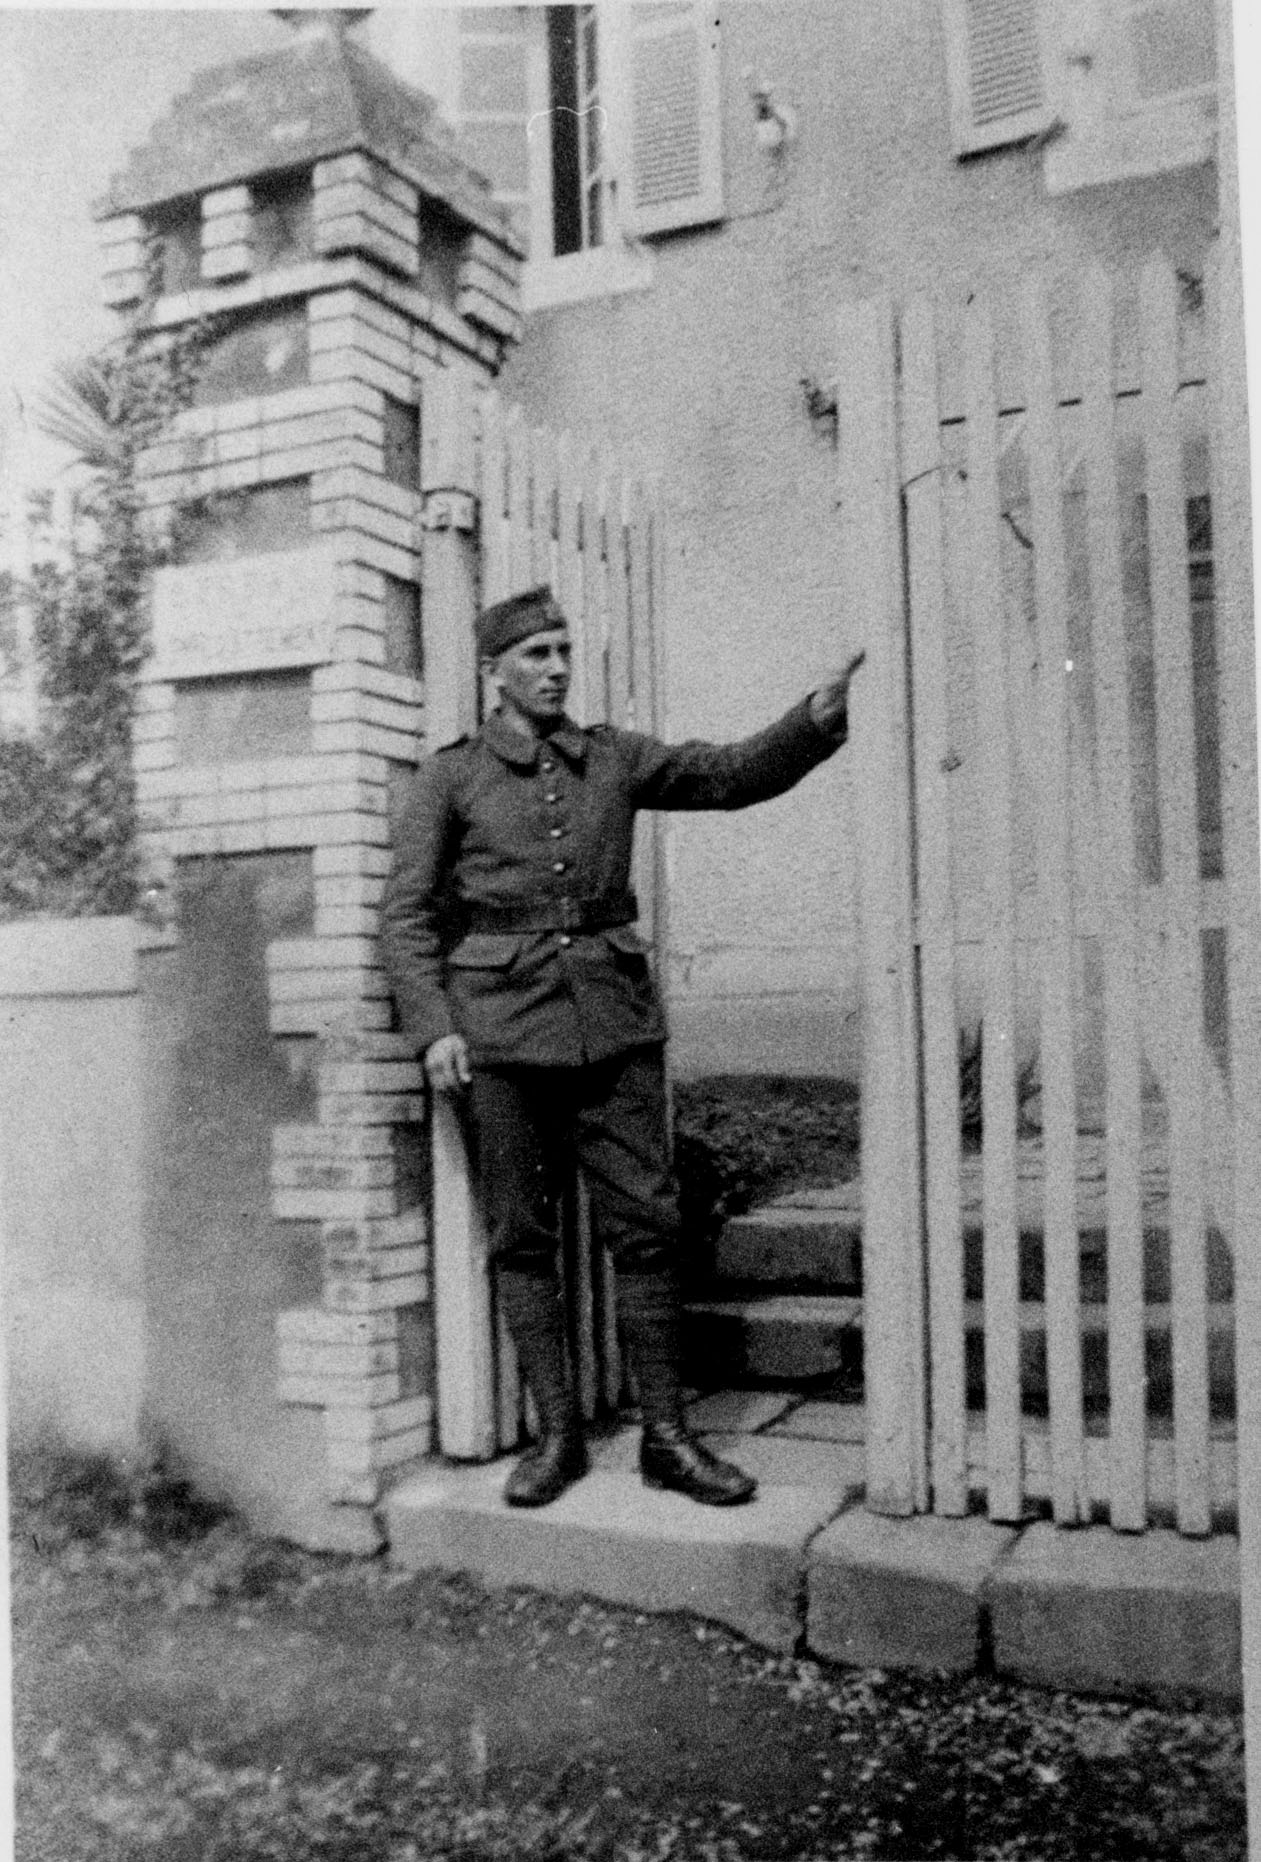 Polish Cavalryman Standing By Gate In Orange, France, Feb 1940